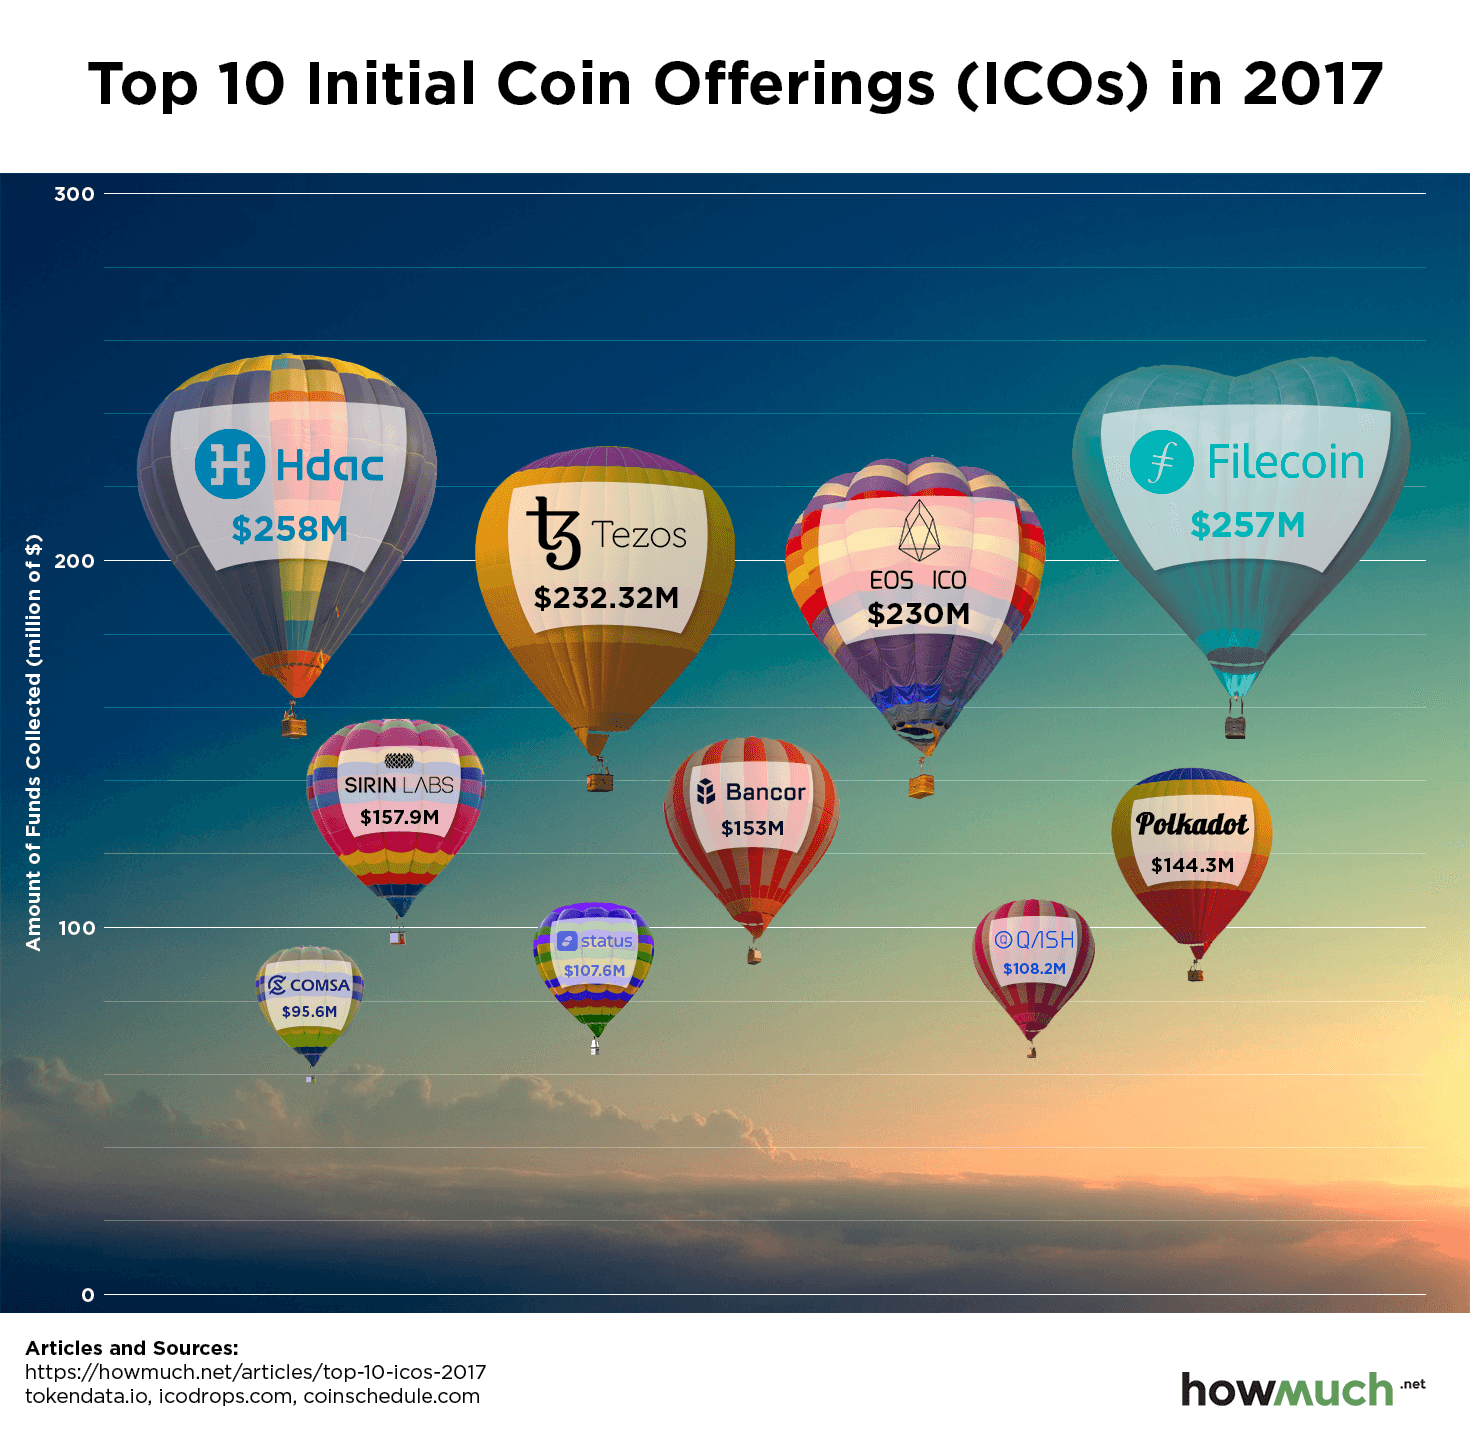 About $400 million lost or stolen in cryptocoin offerings since 2015